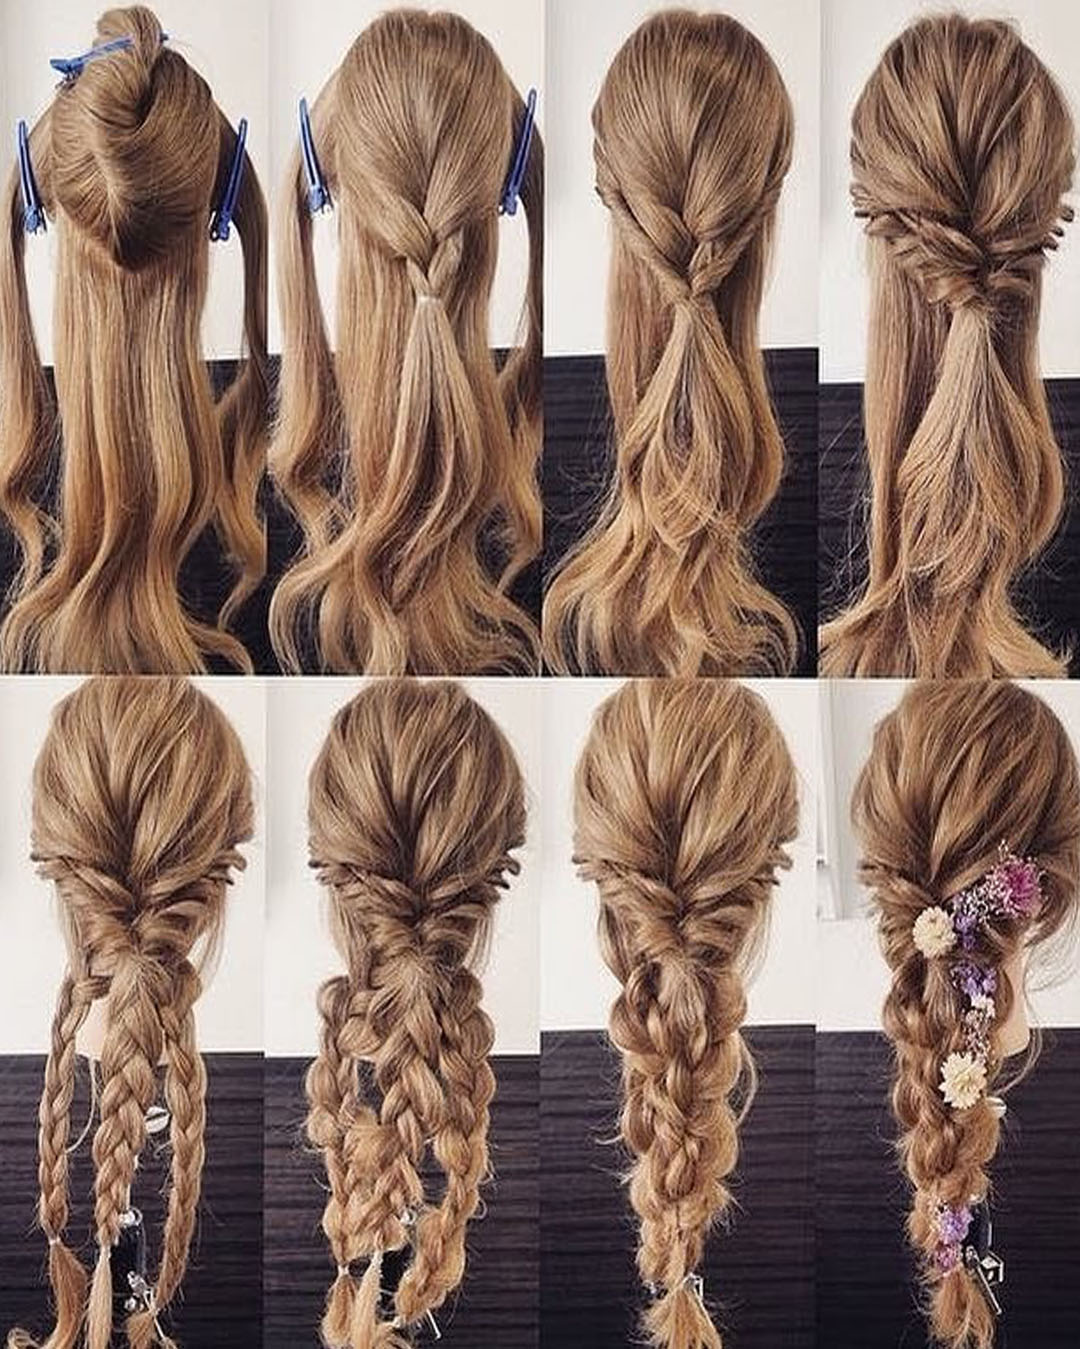 hairstyles with easy step-by-step braids and stylish tumblr